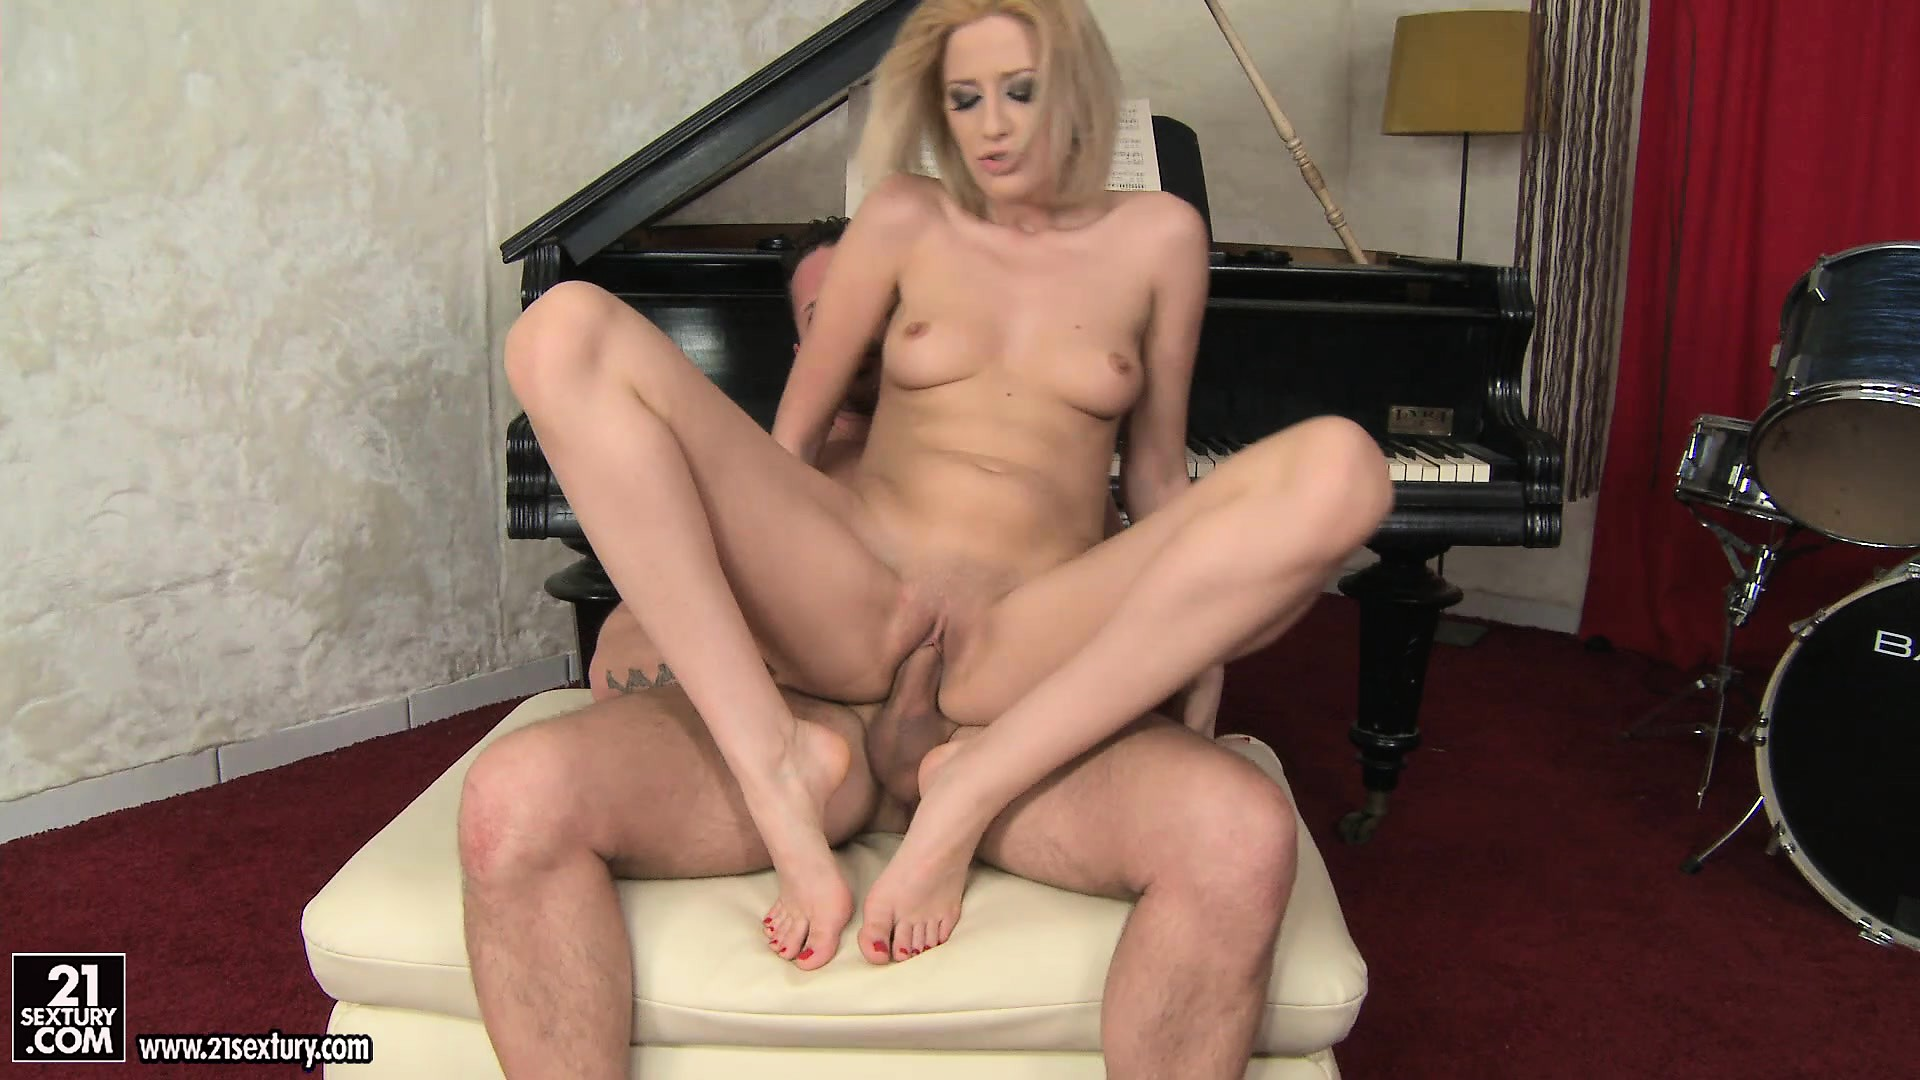 Free Mobile Porn Sex Videos Sex Movies Skinny Blonde Seduces The Piano Teacher To Fulfill Her Foot Fantasy 404166 Proporn Com